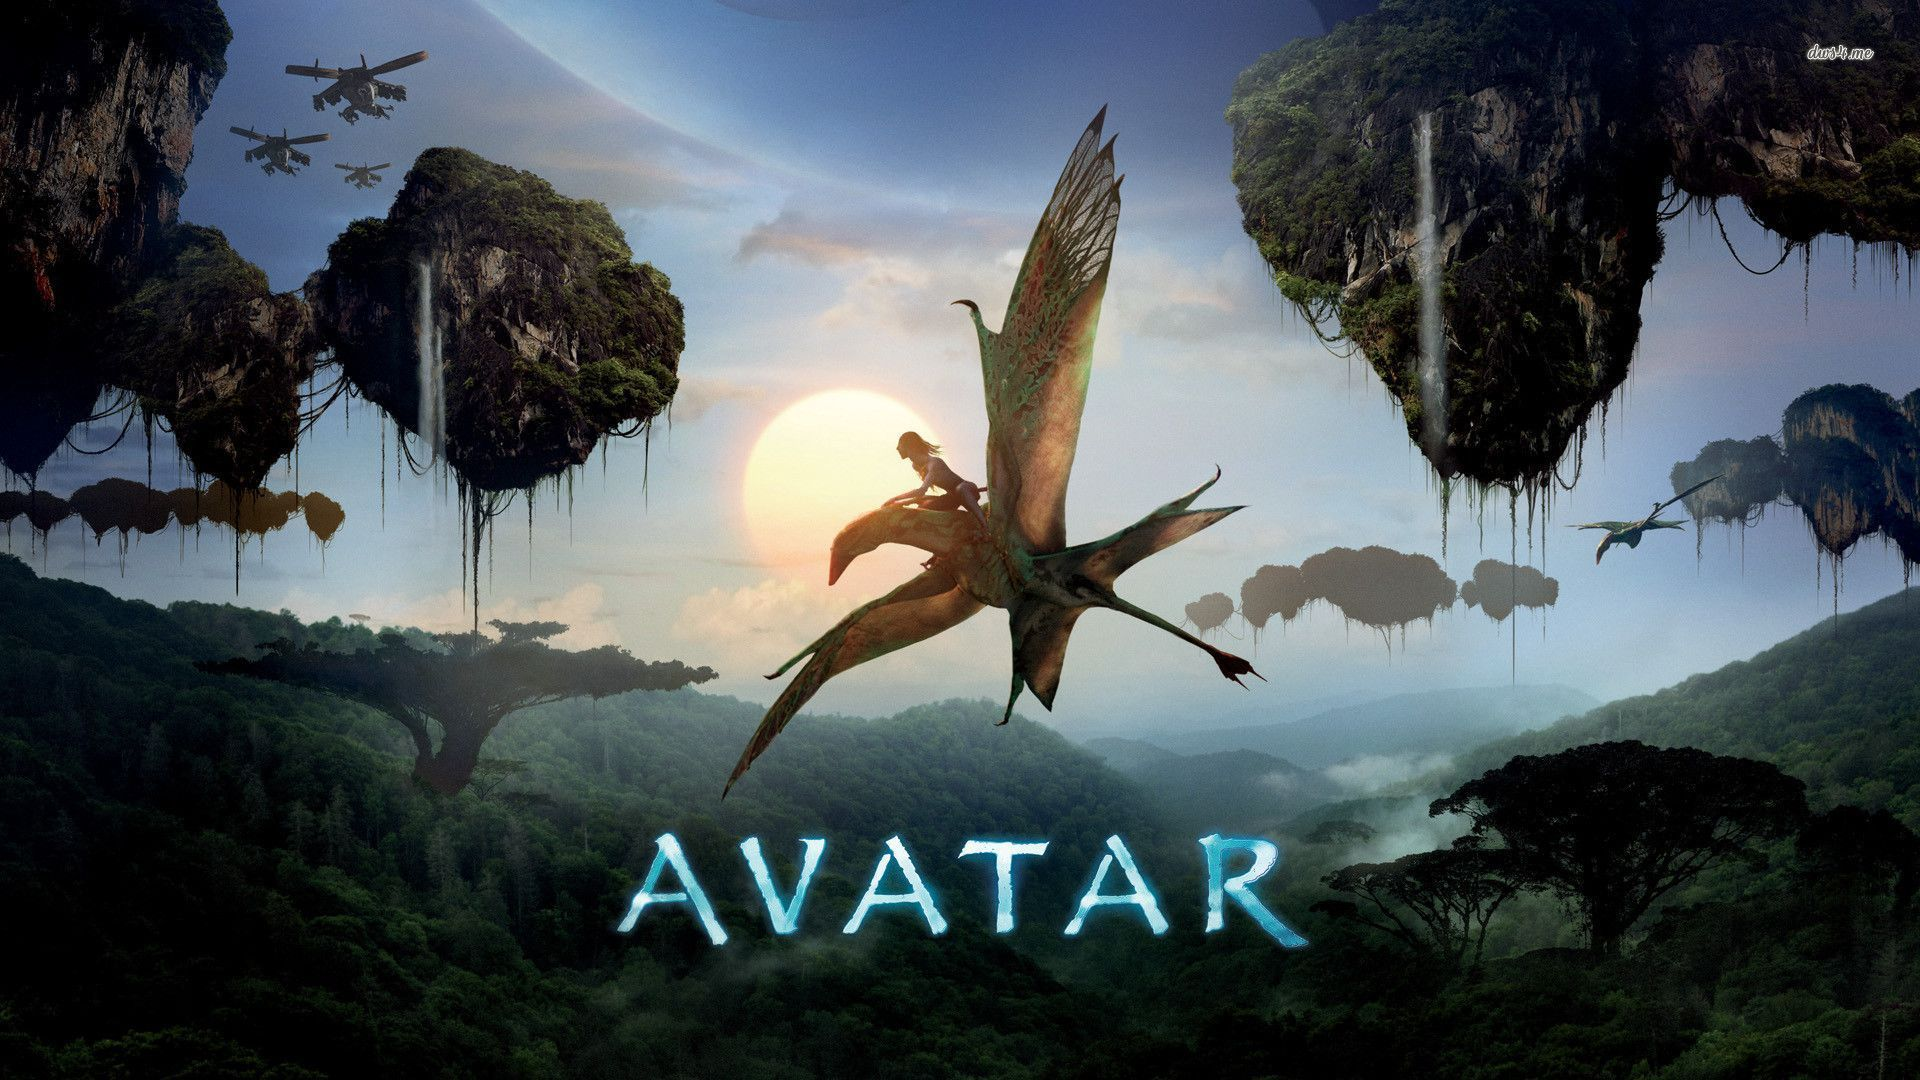 ficial Avatar Movie Poster Wallpapers HD Wallpapers